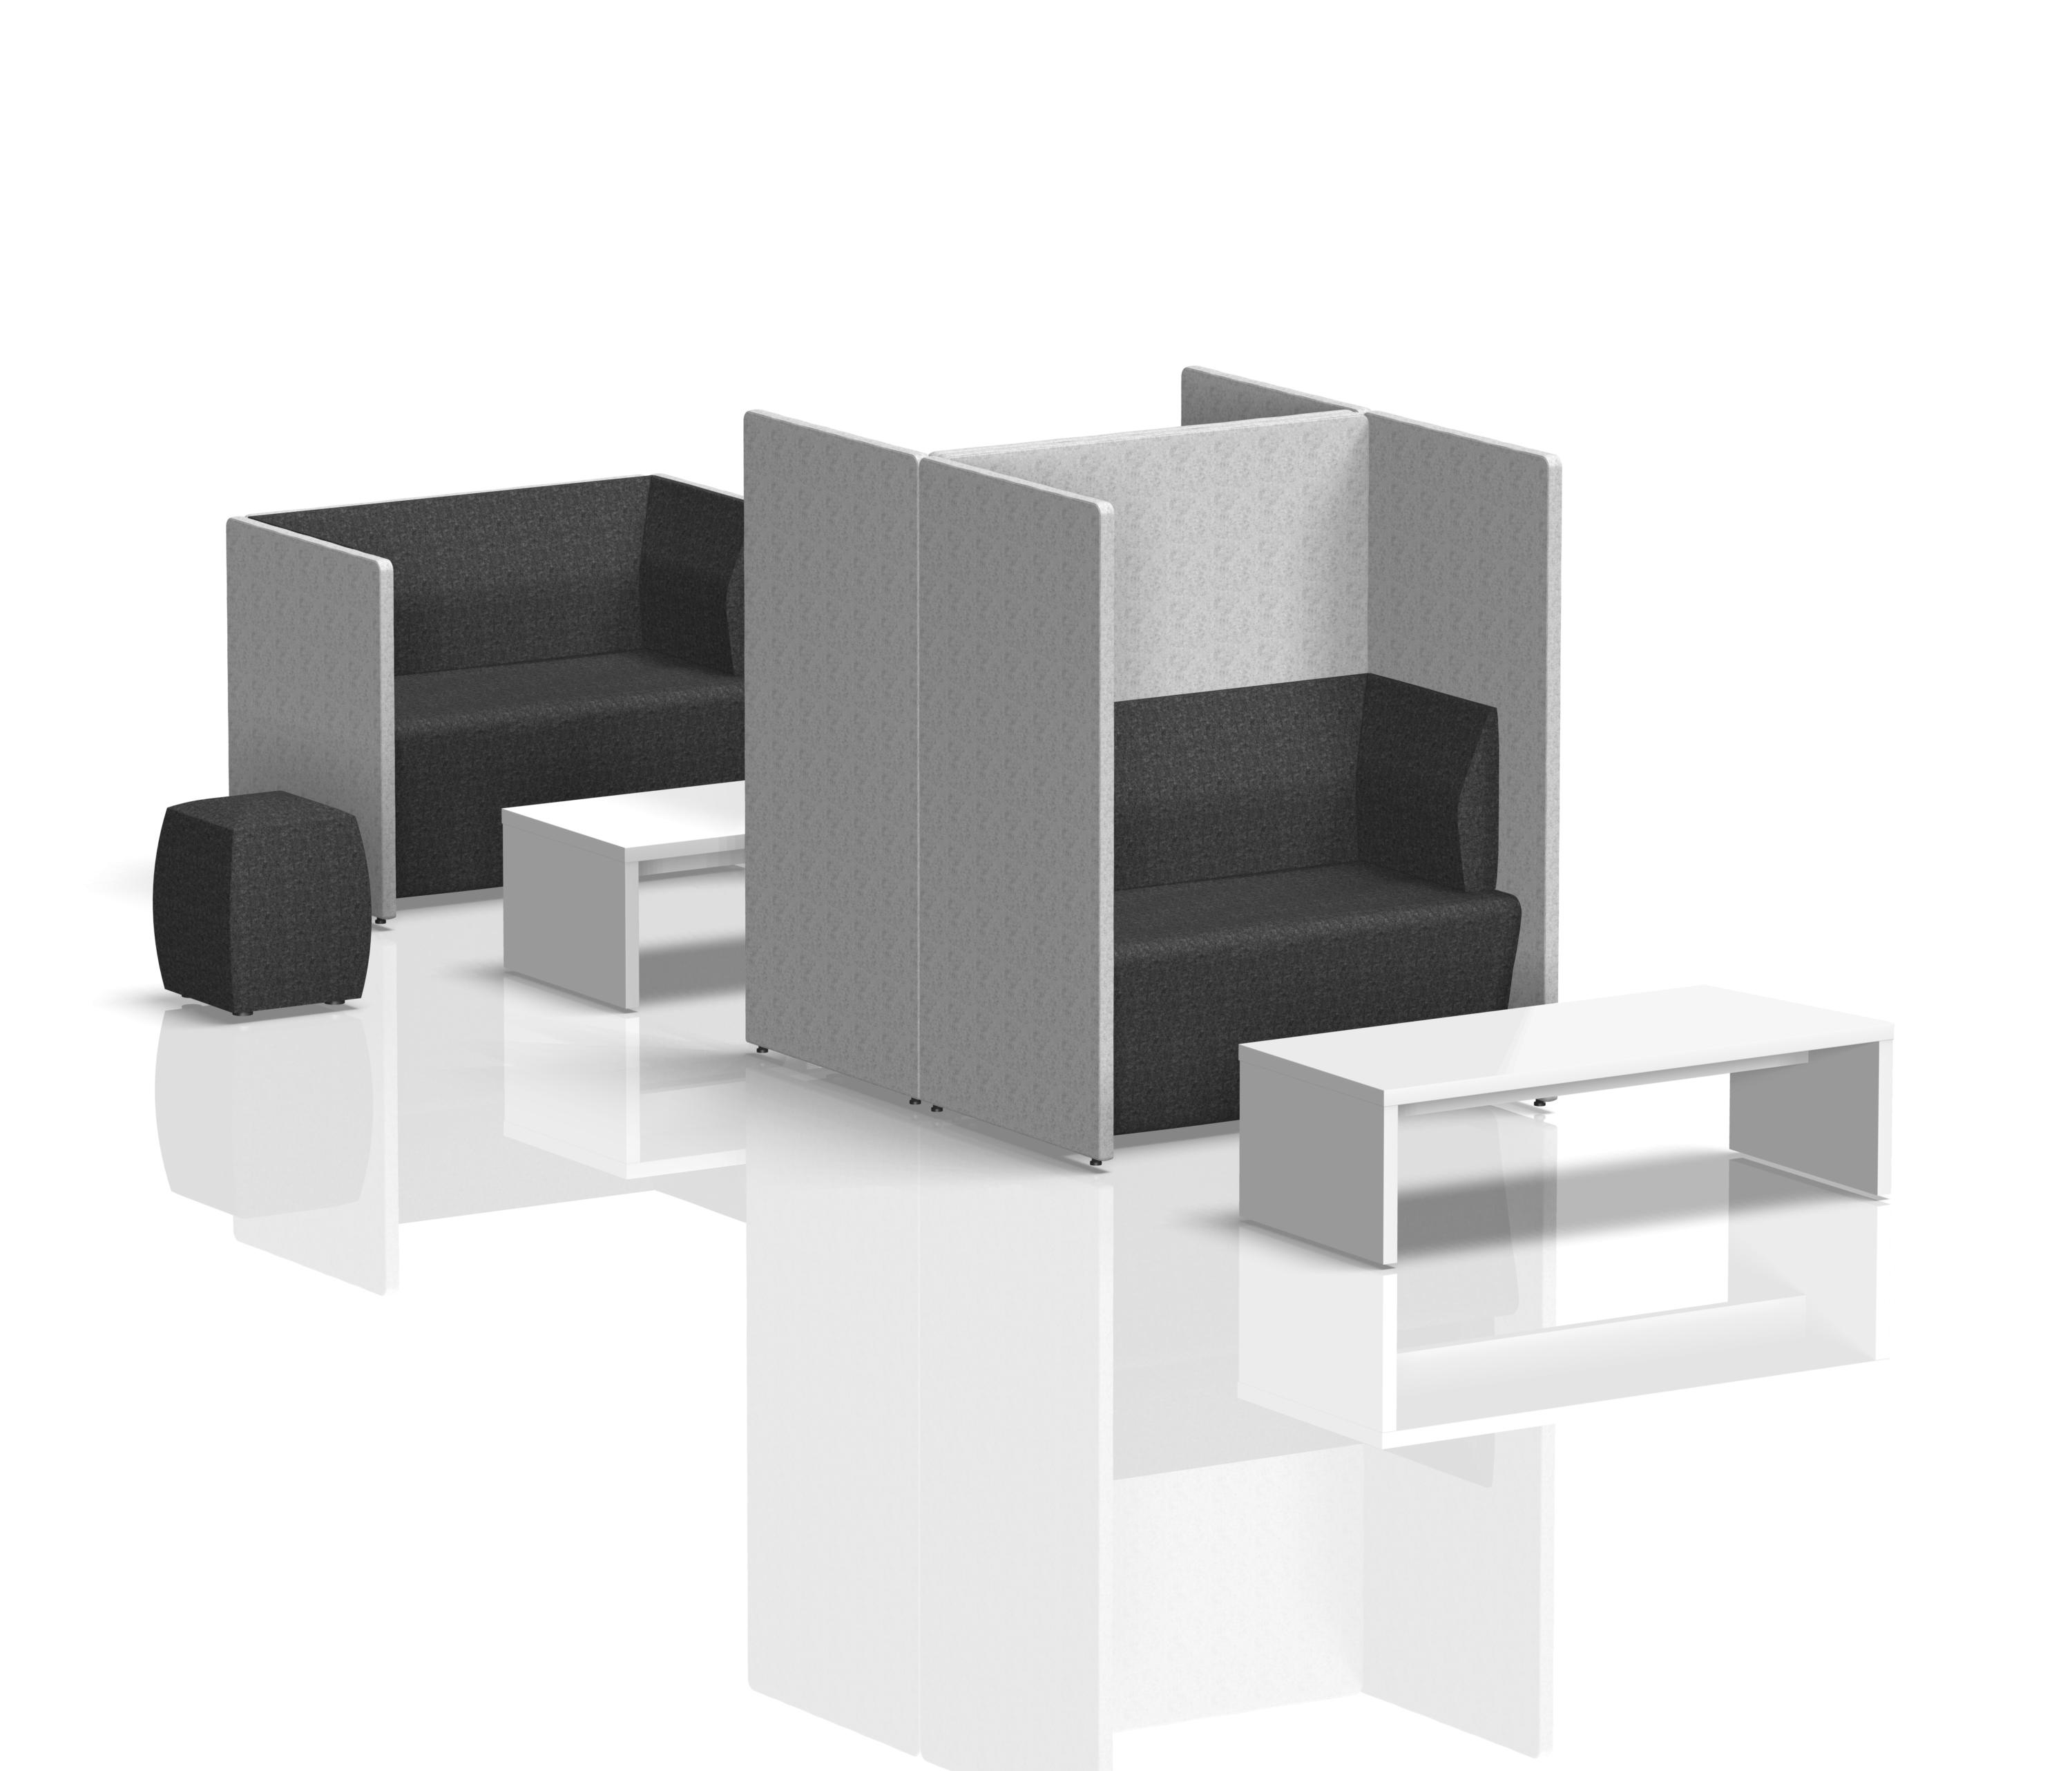 SYNEO LOUNGE FURNITURE - Lounge sofas from Assmann Büromöbel ...